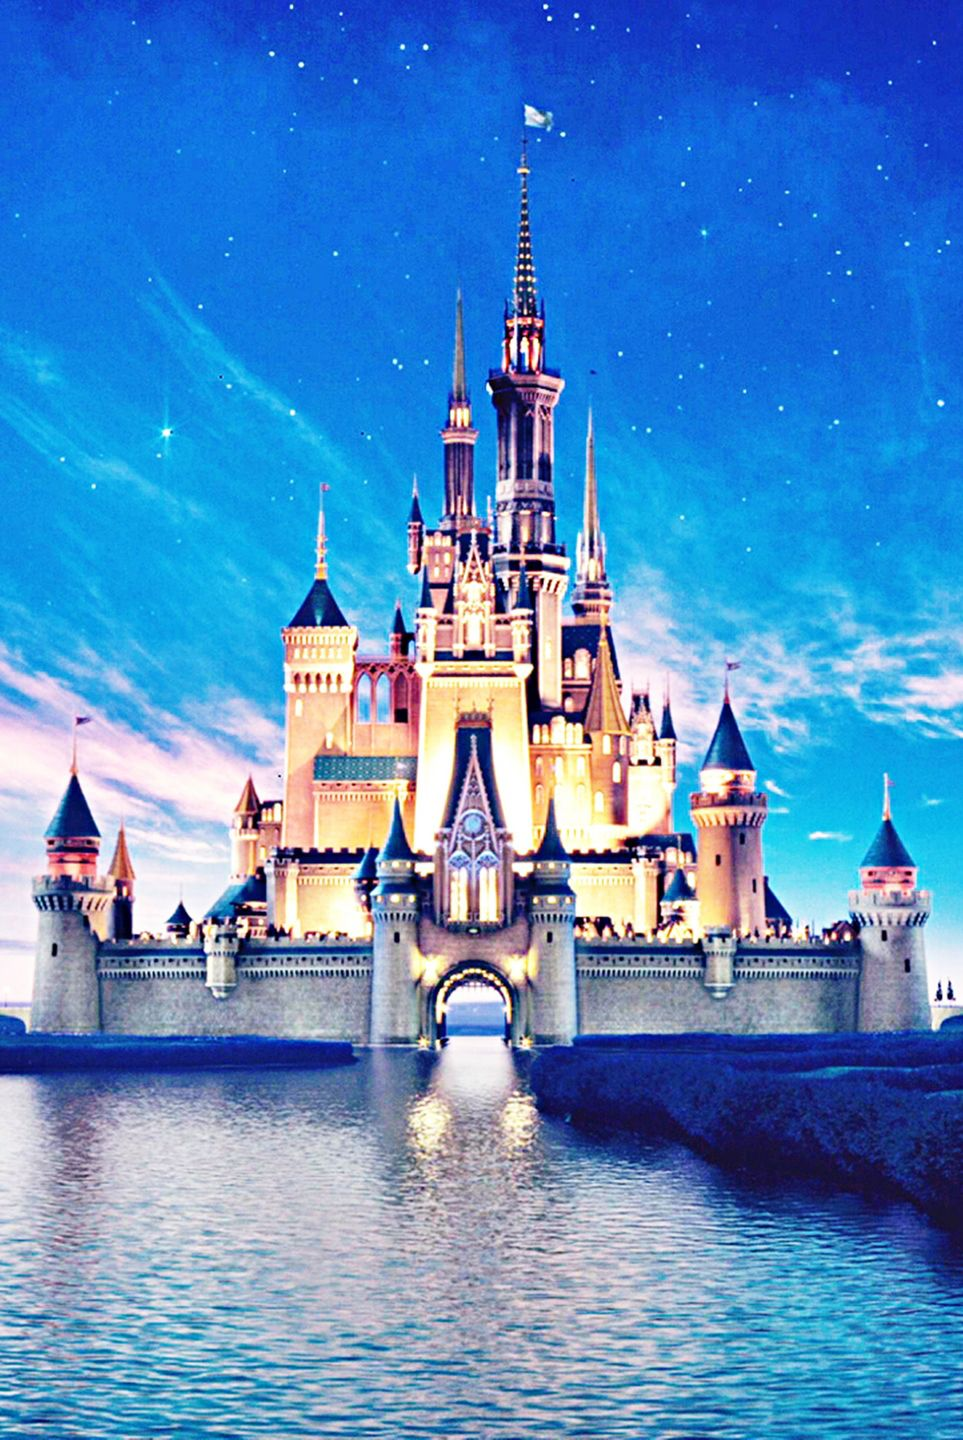 Disney world iphone wallpaper tumblr - Explore Iphone Background Disney And More